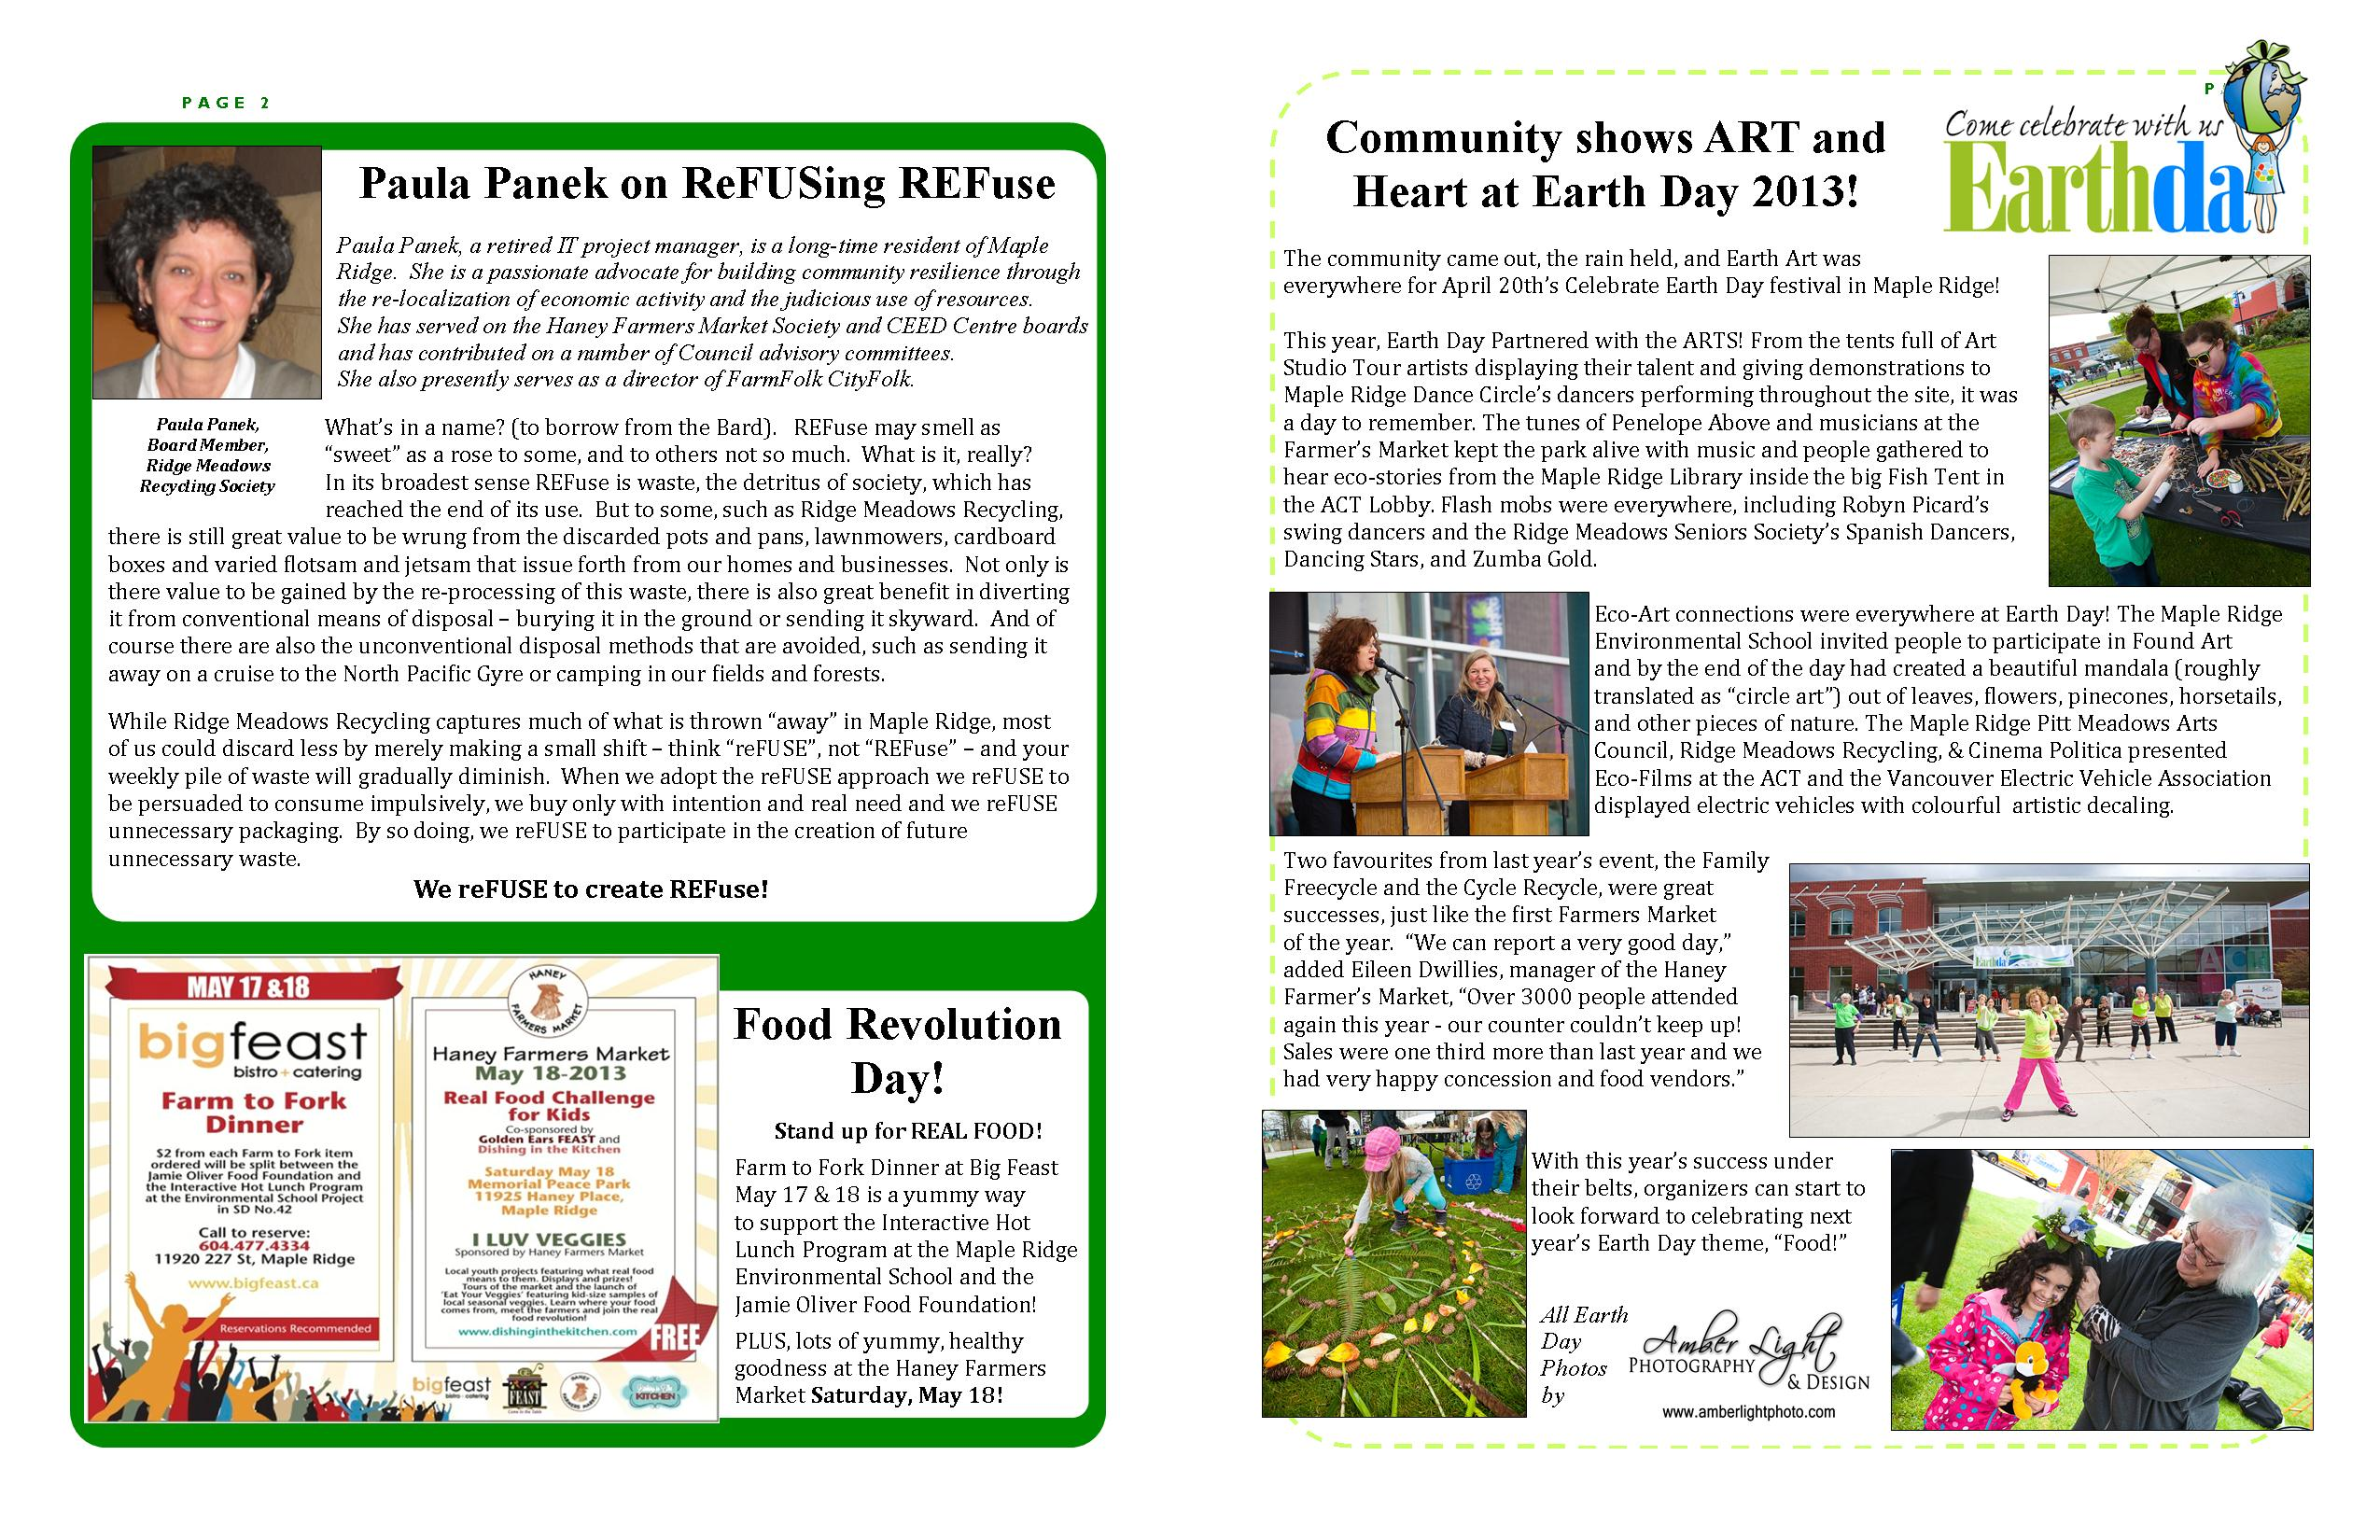 RMRS May, 2013 Newsletter - Pages 2 & 3